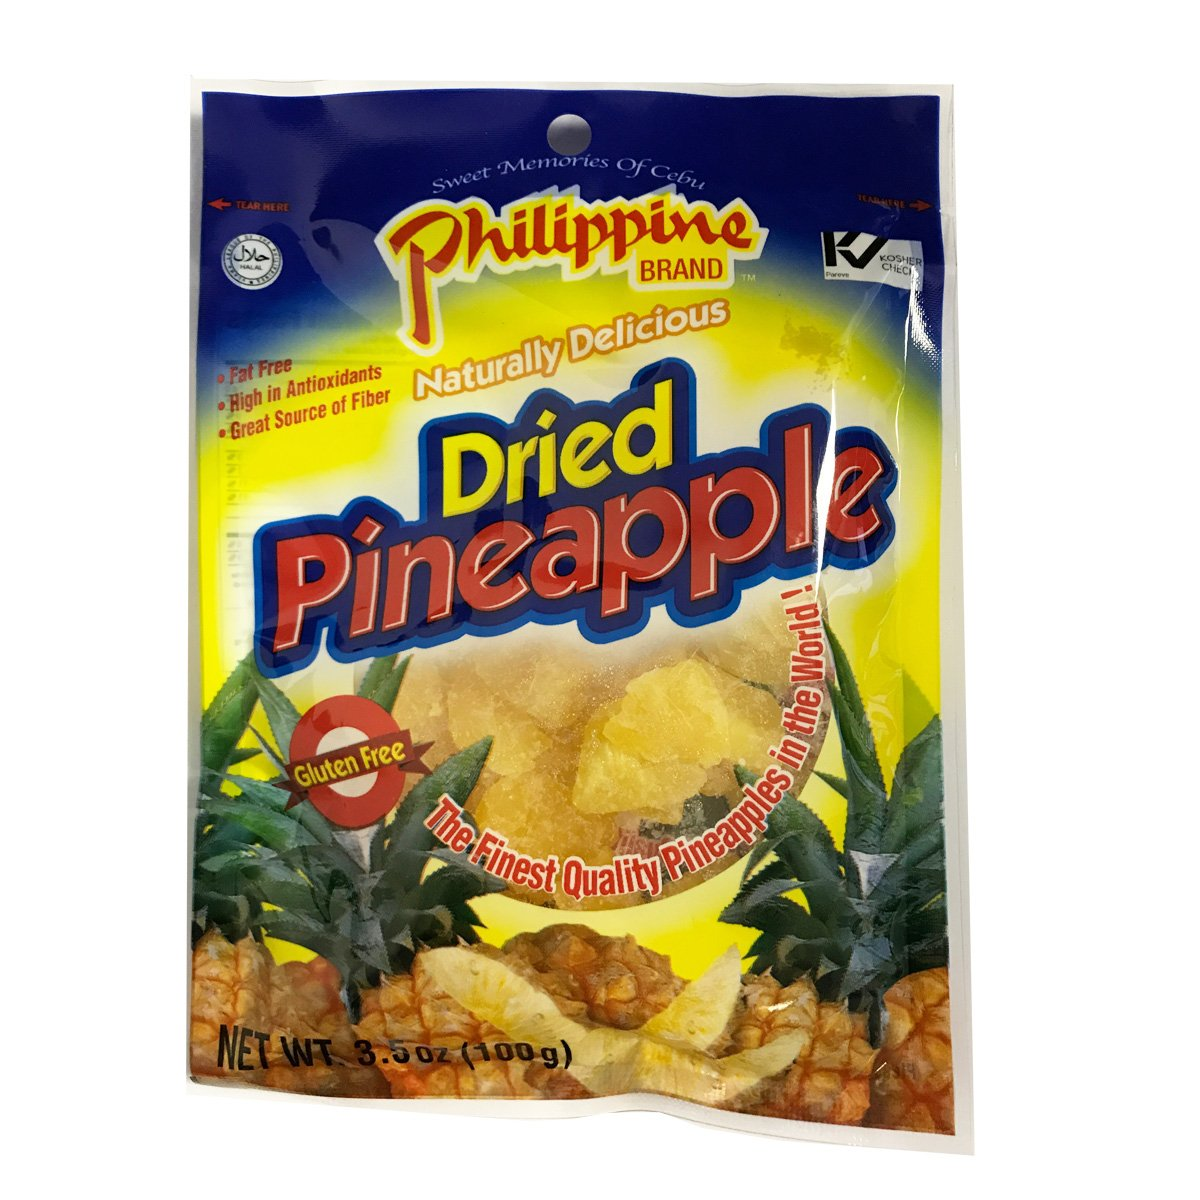 Philippine Brand Dried Pineapples, 3.5oz/100g (10 Packs) by Philippine